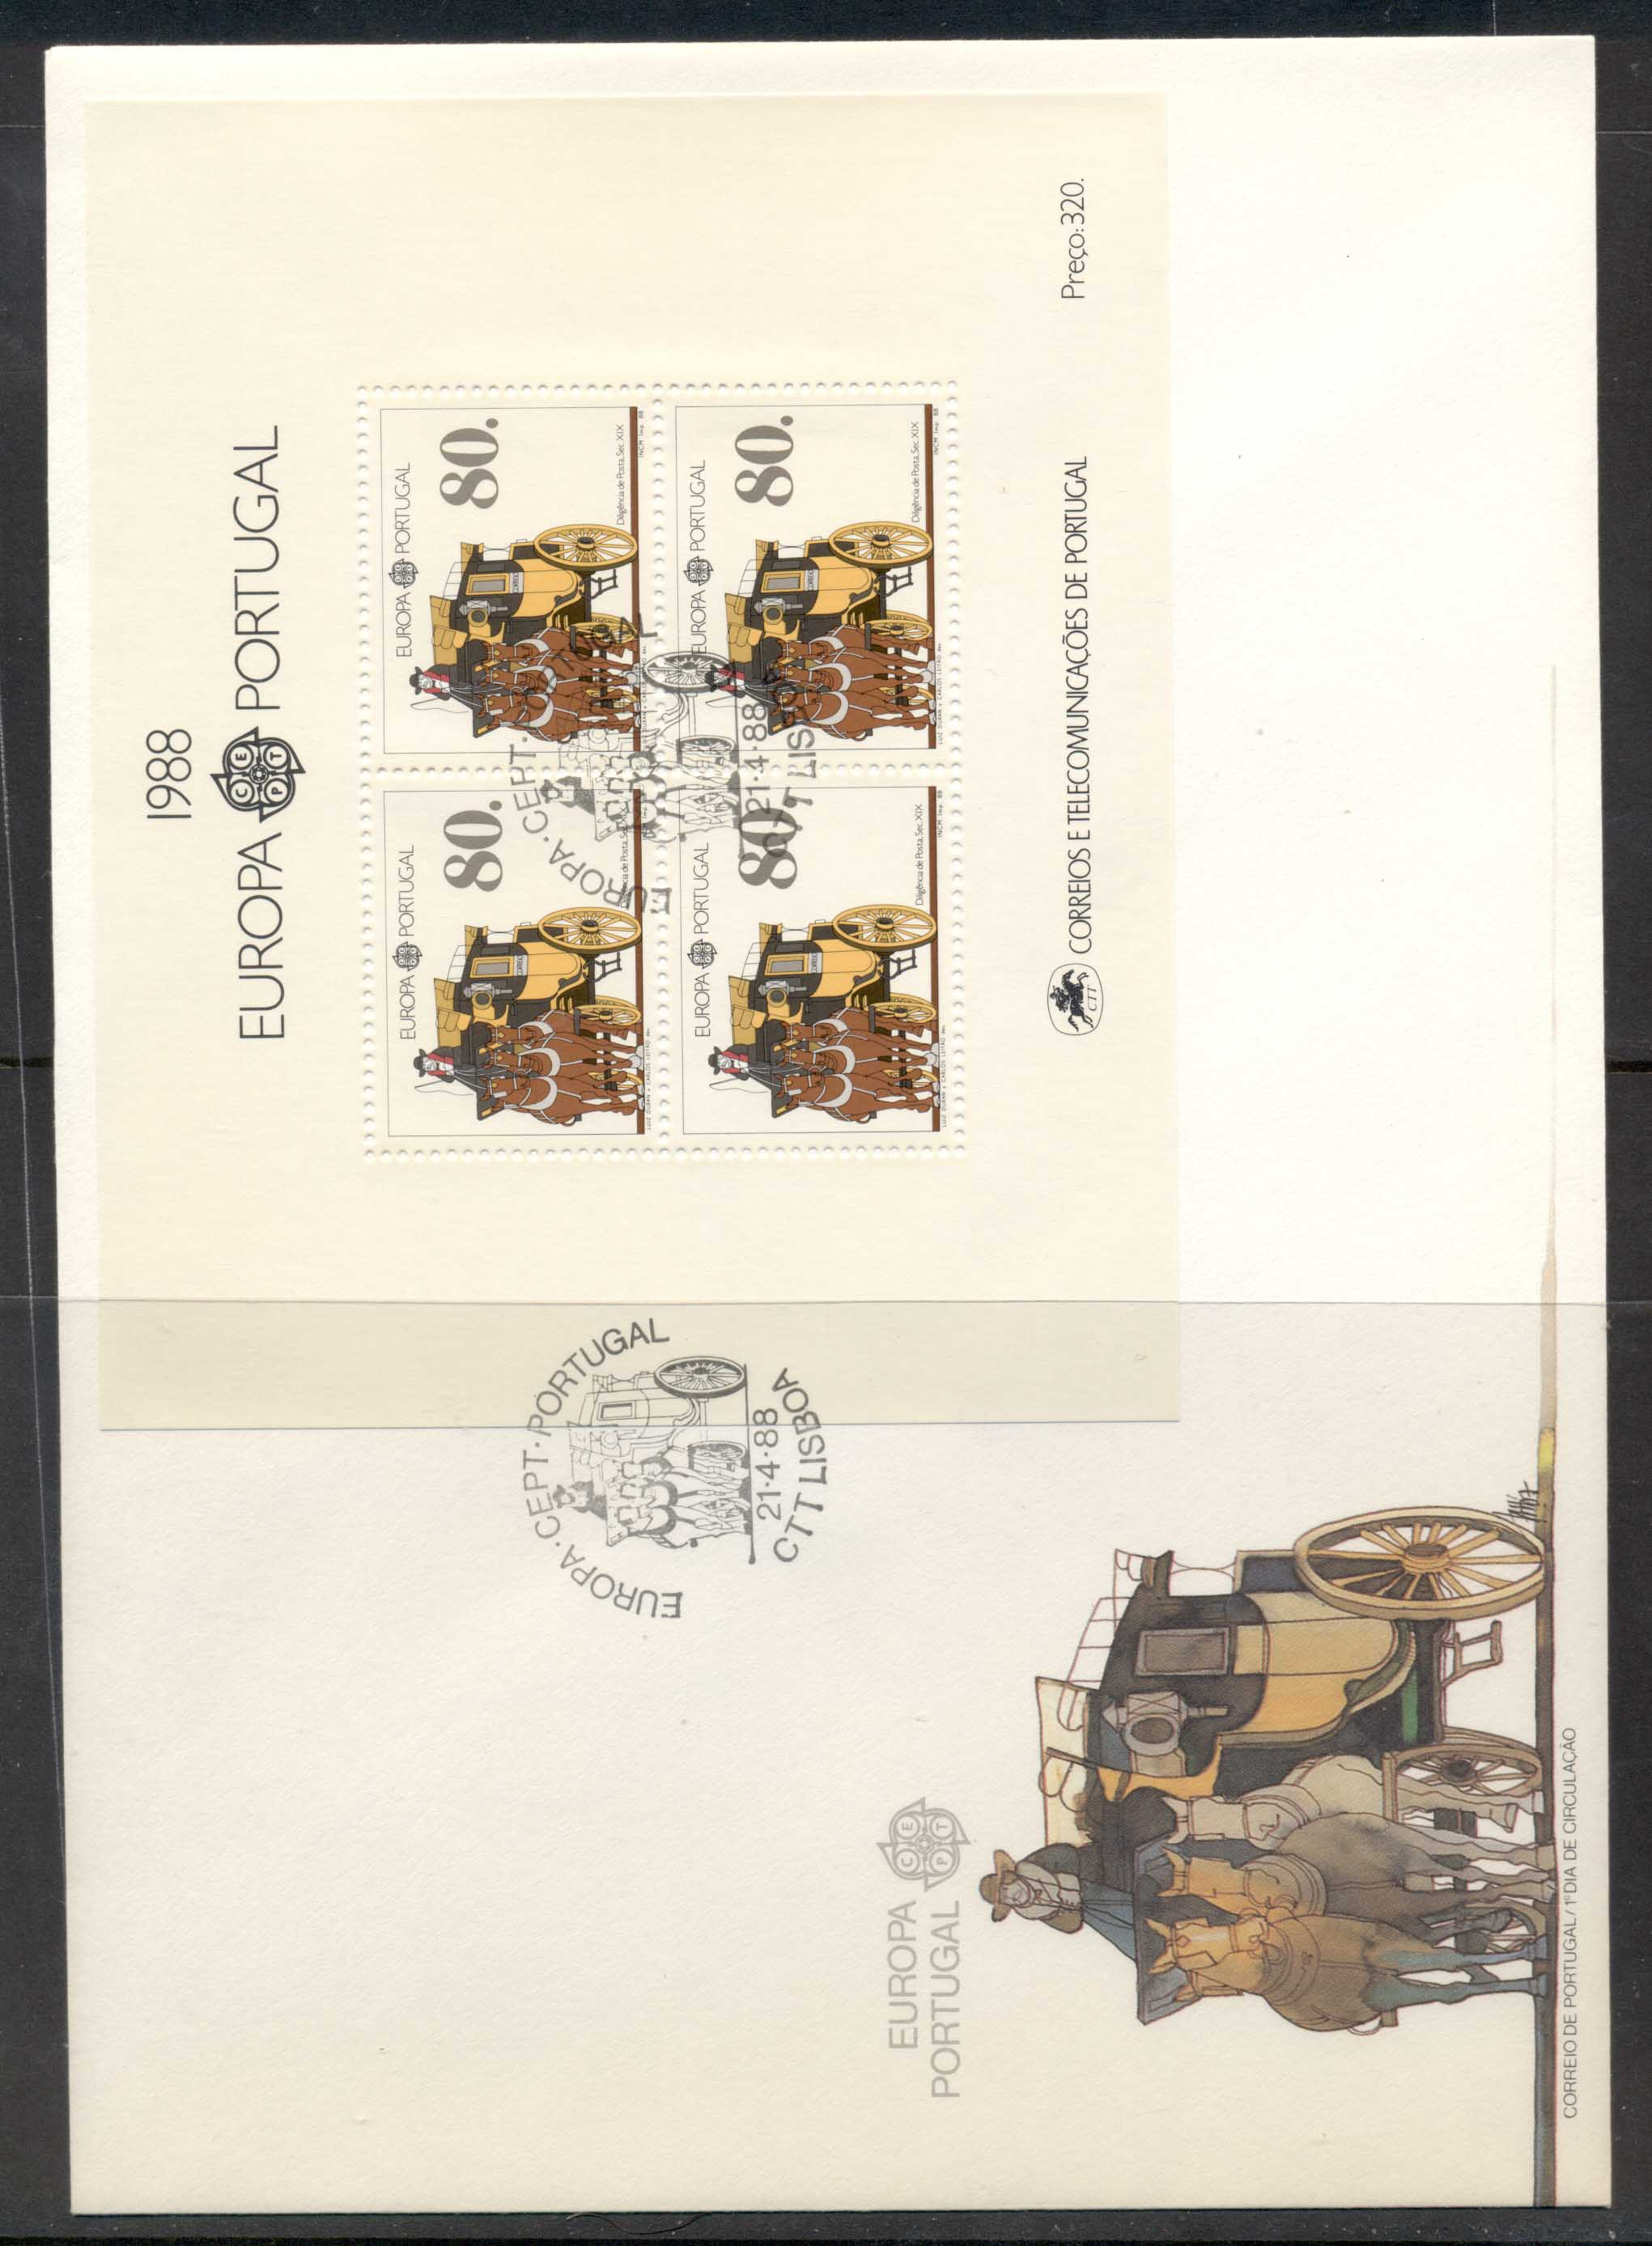 Portugal 1988 Europa Transport & Communication XLMS FDC